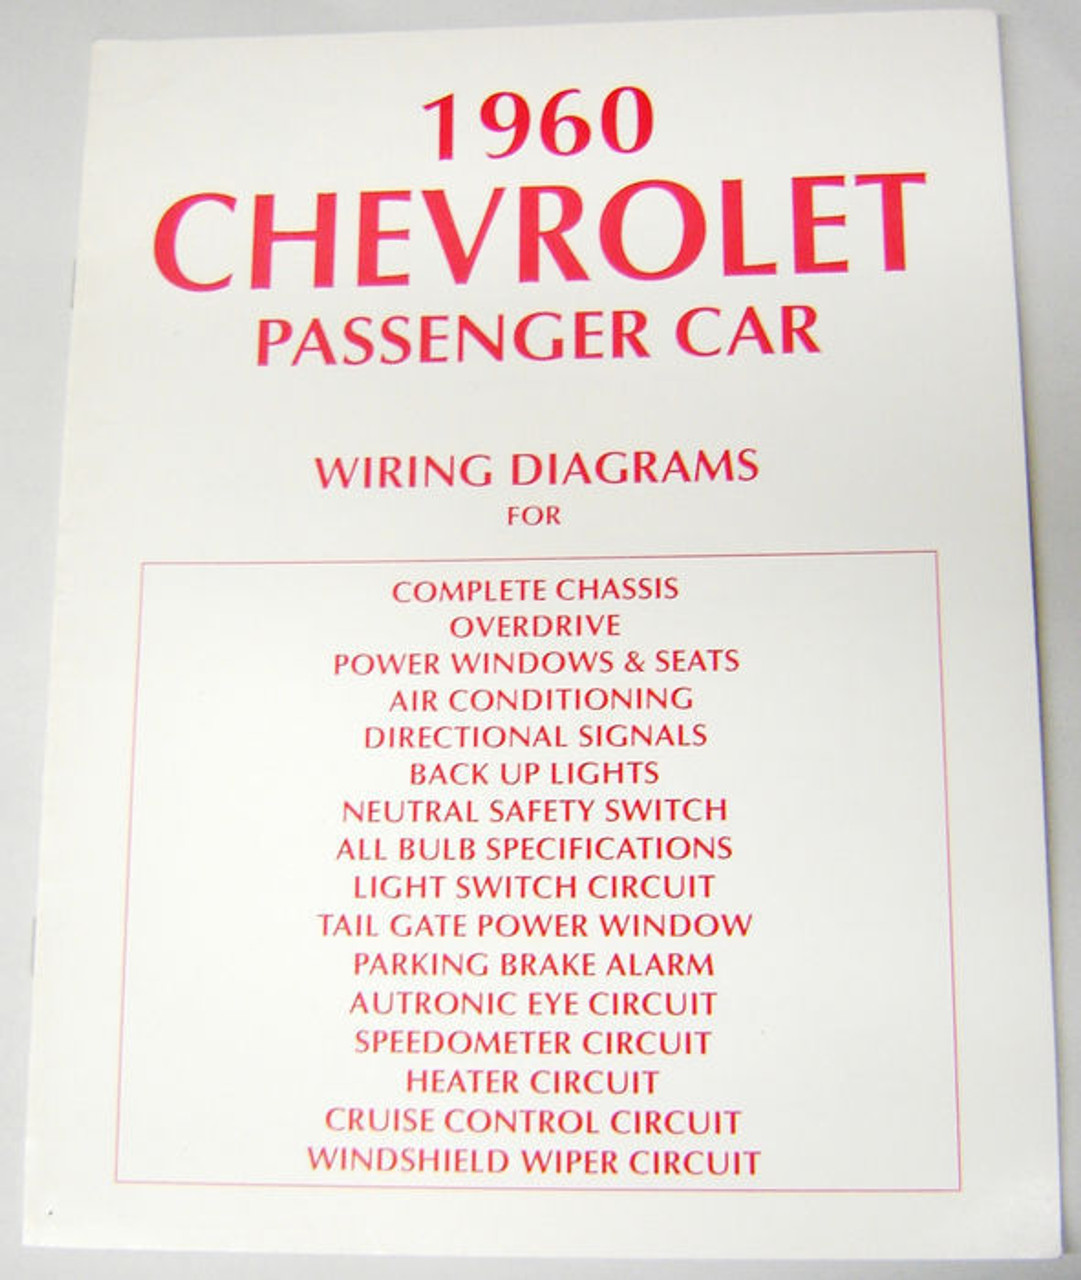 60 1960 Chevy Electrical Wiring Diagram Manual - I-5 Classic Chevy